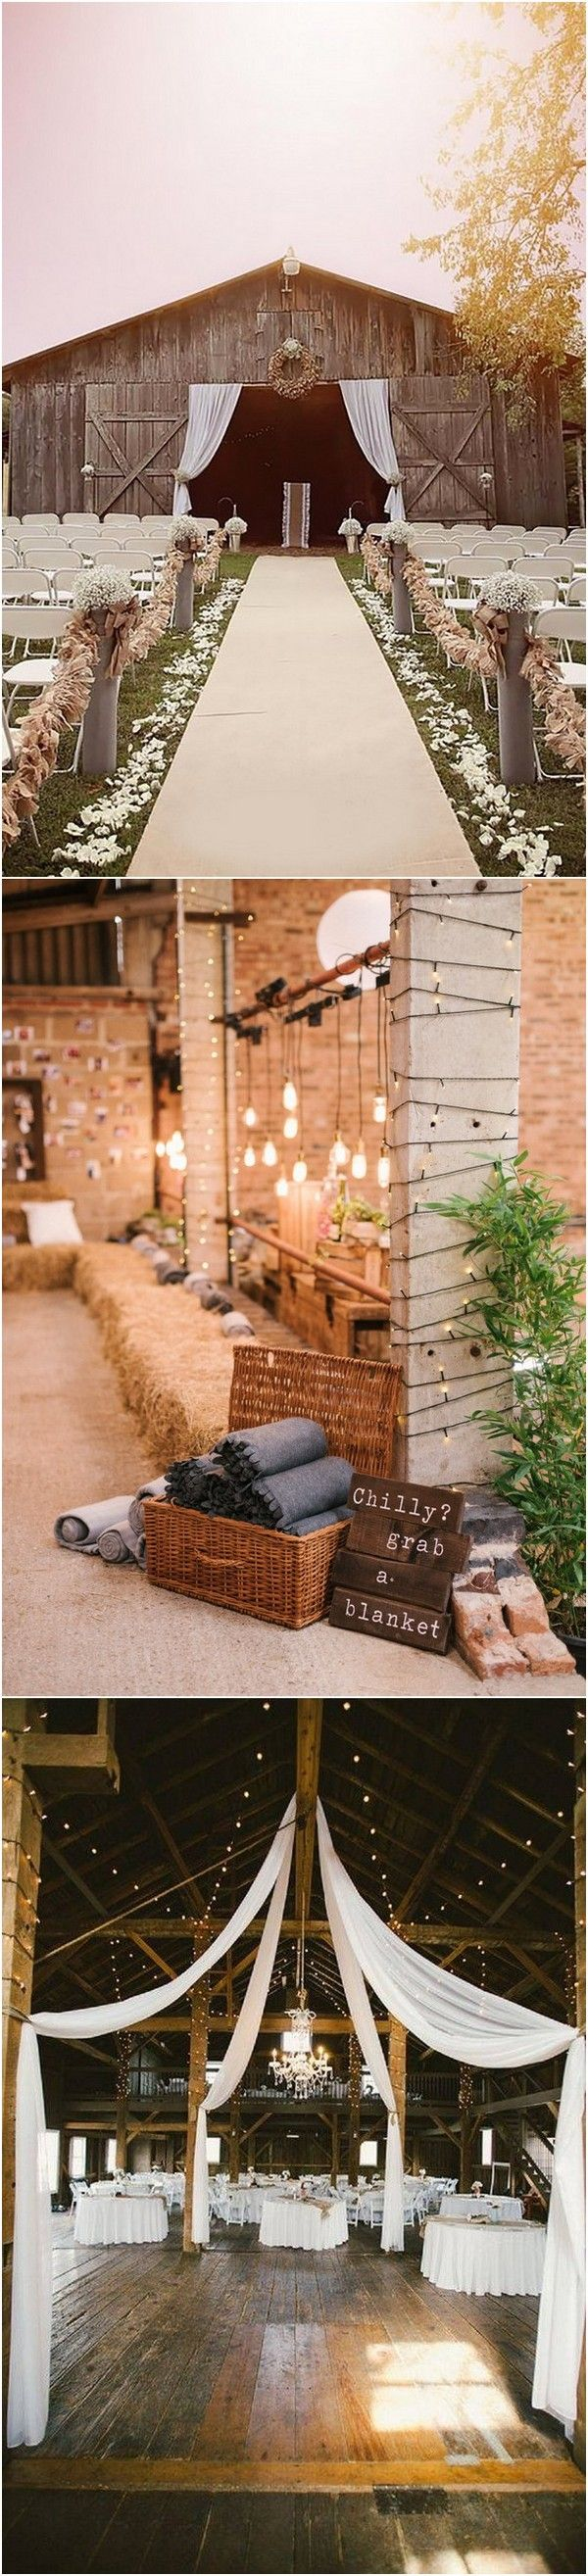 Wedding decoration ideas home   Perfect Country Rustic Barn Wedding Decoration Ideas  Page  of